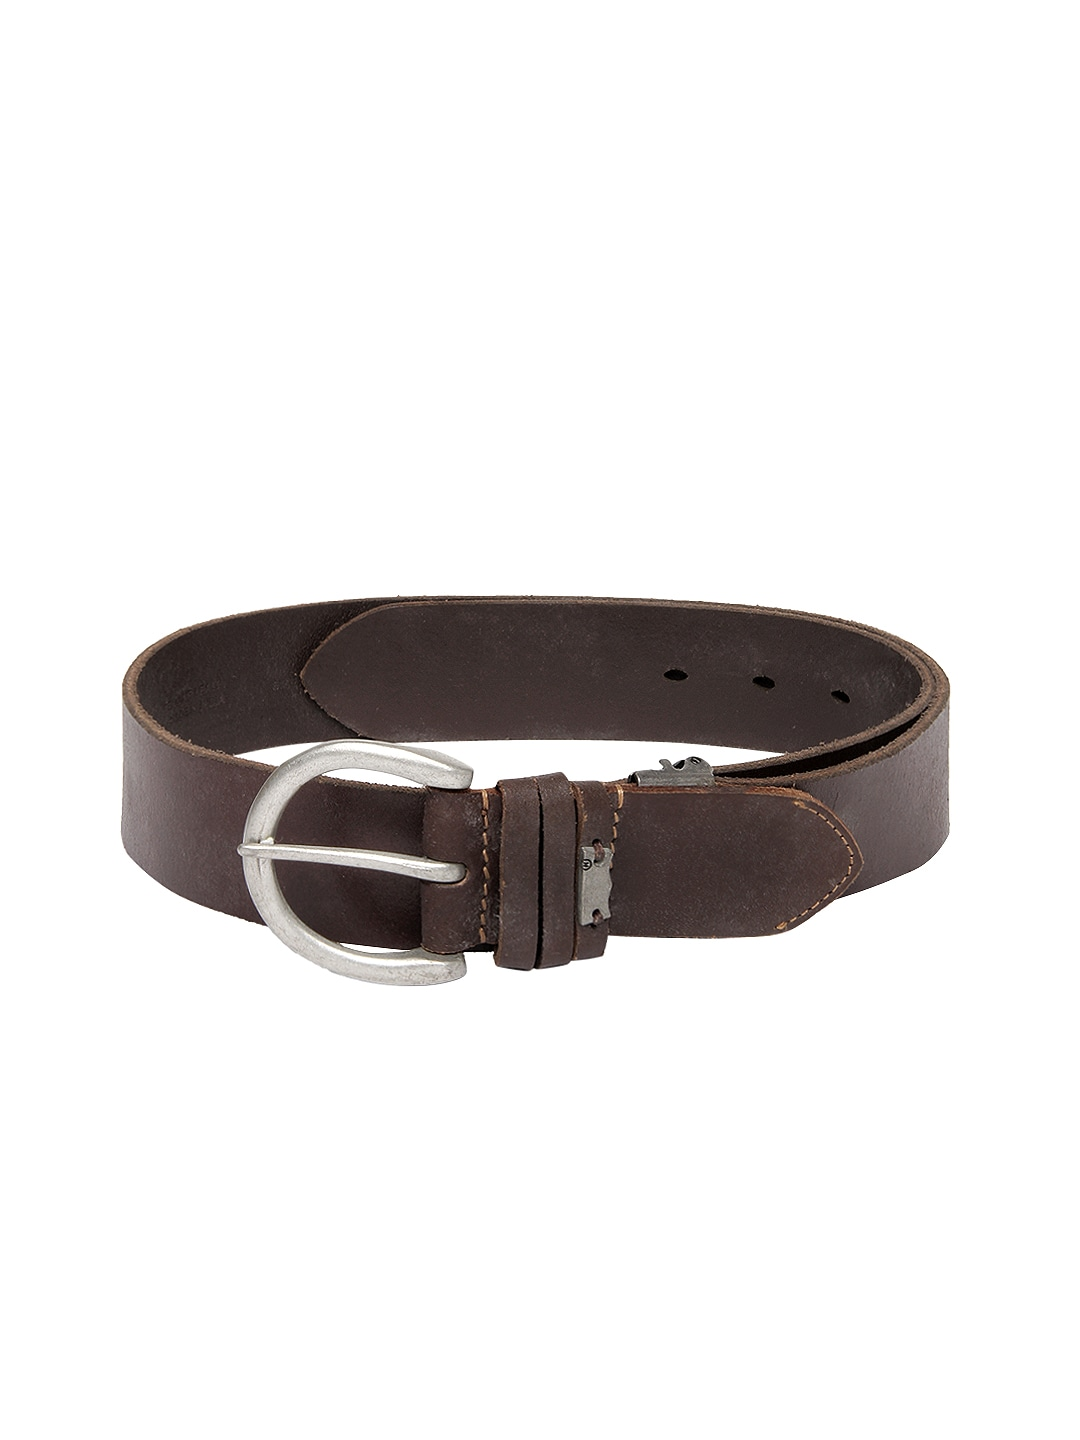 Buy Levis Women Brown Leather Belt 360 Accessories For